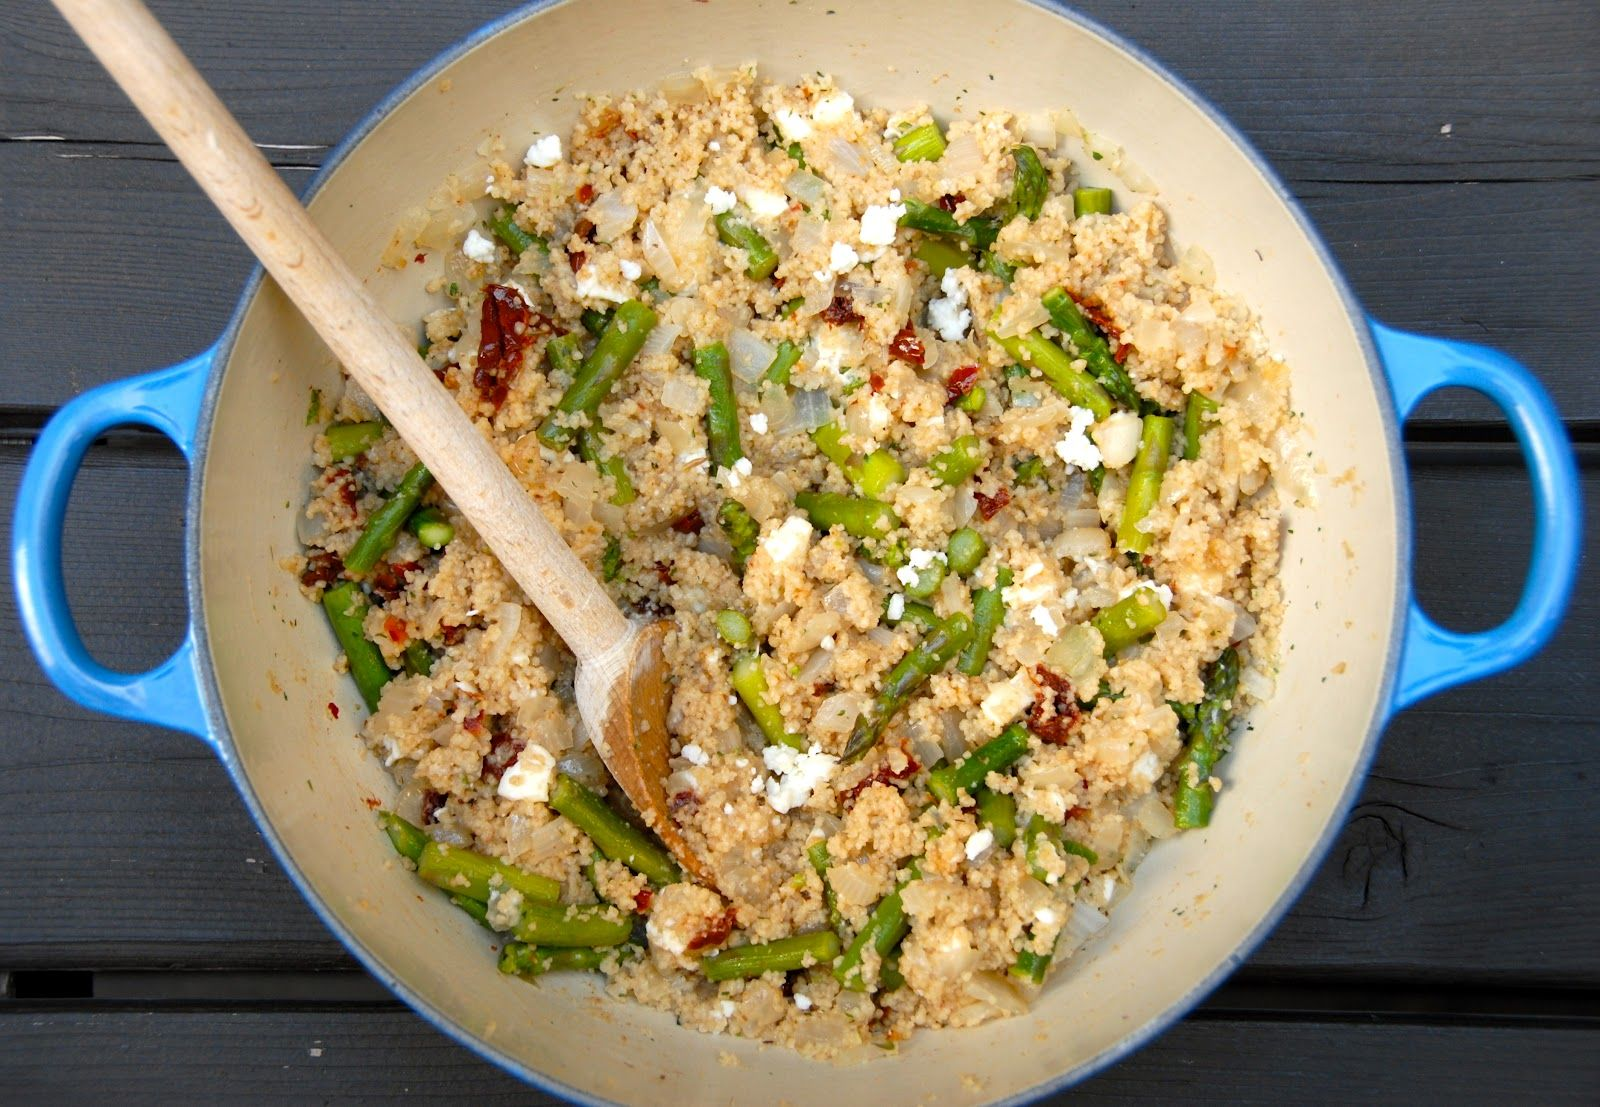 The Savvy Spoon: Couscous Salad with Feta, Asparagus, and Sun-dried Tomatoes